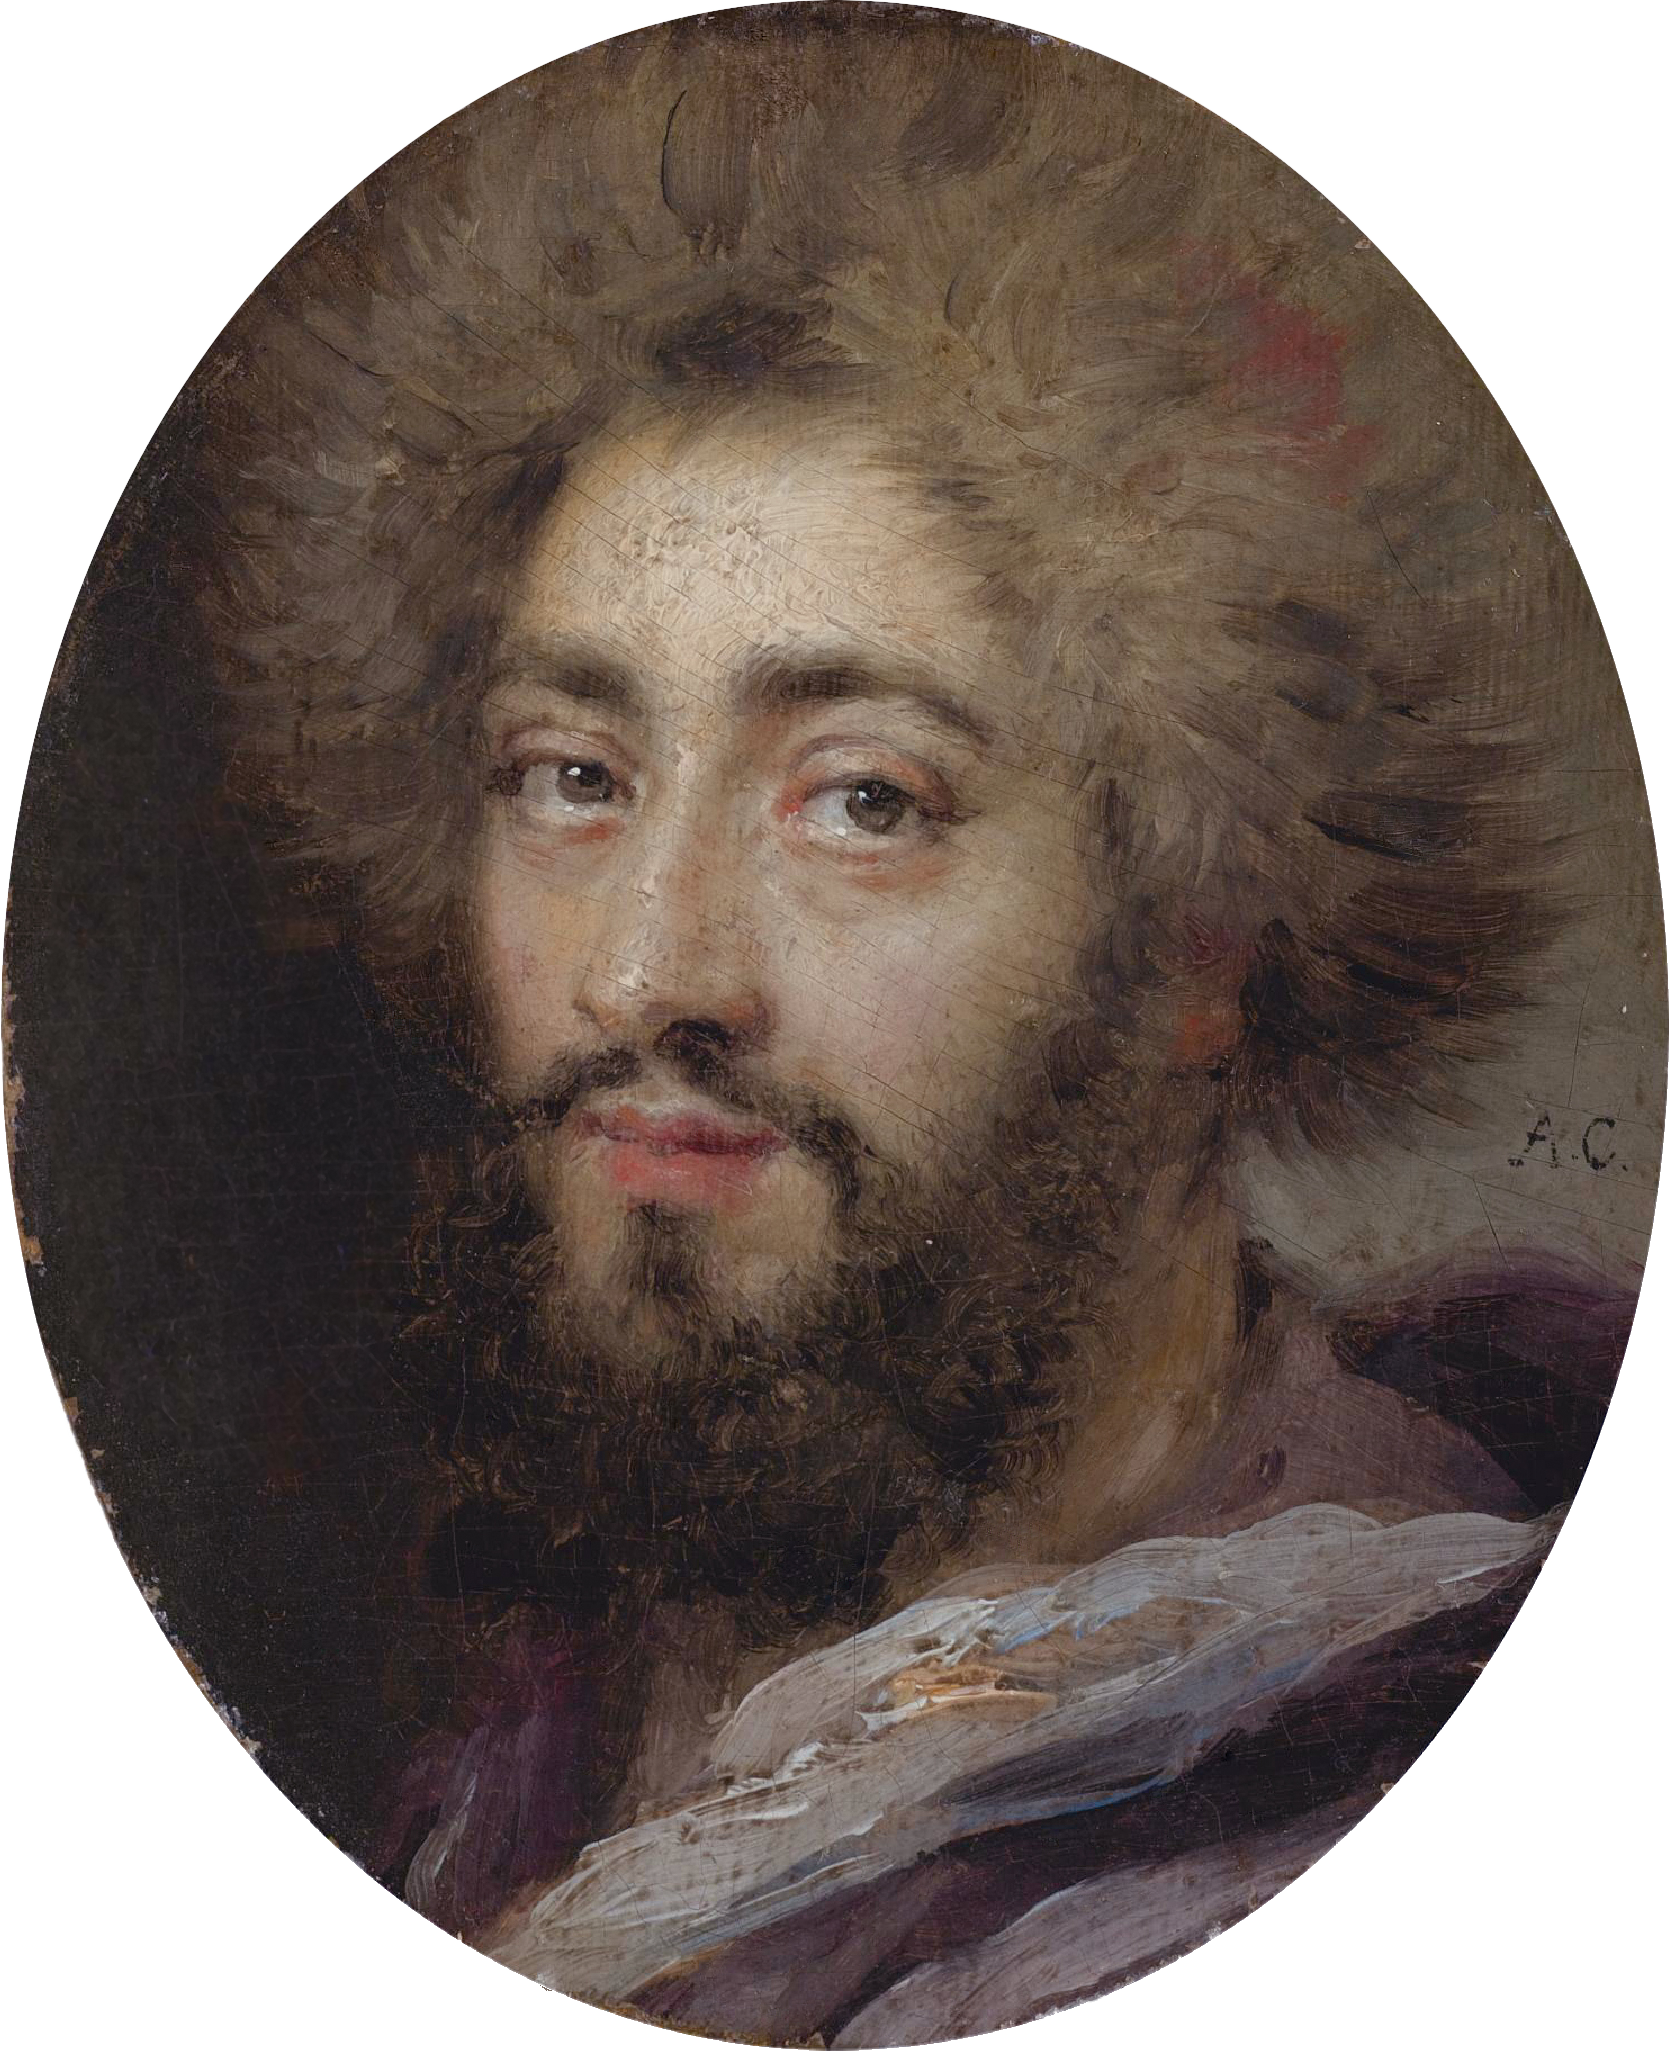 the history of absolutism in france during the reign of louis xiv The life of the sun king, louis xiv of france details his childhood, marriage, mistresses, palace of versailles, and reign.